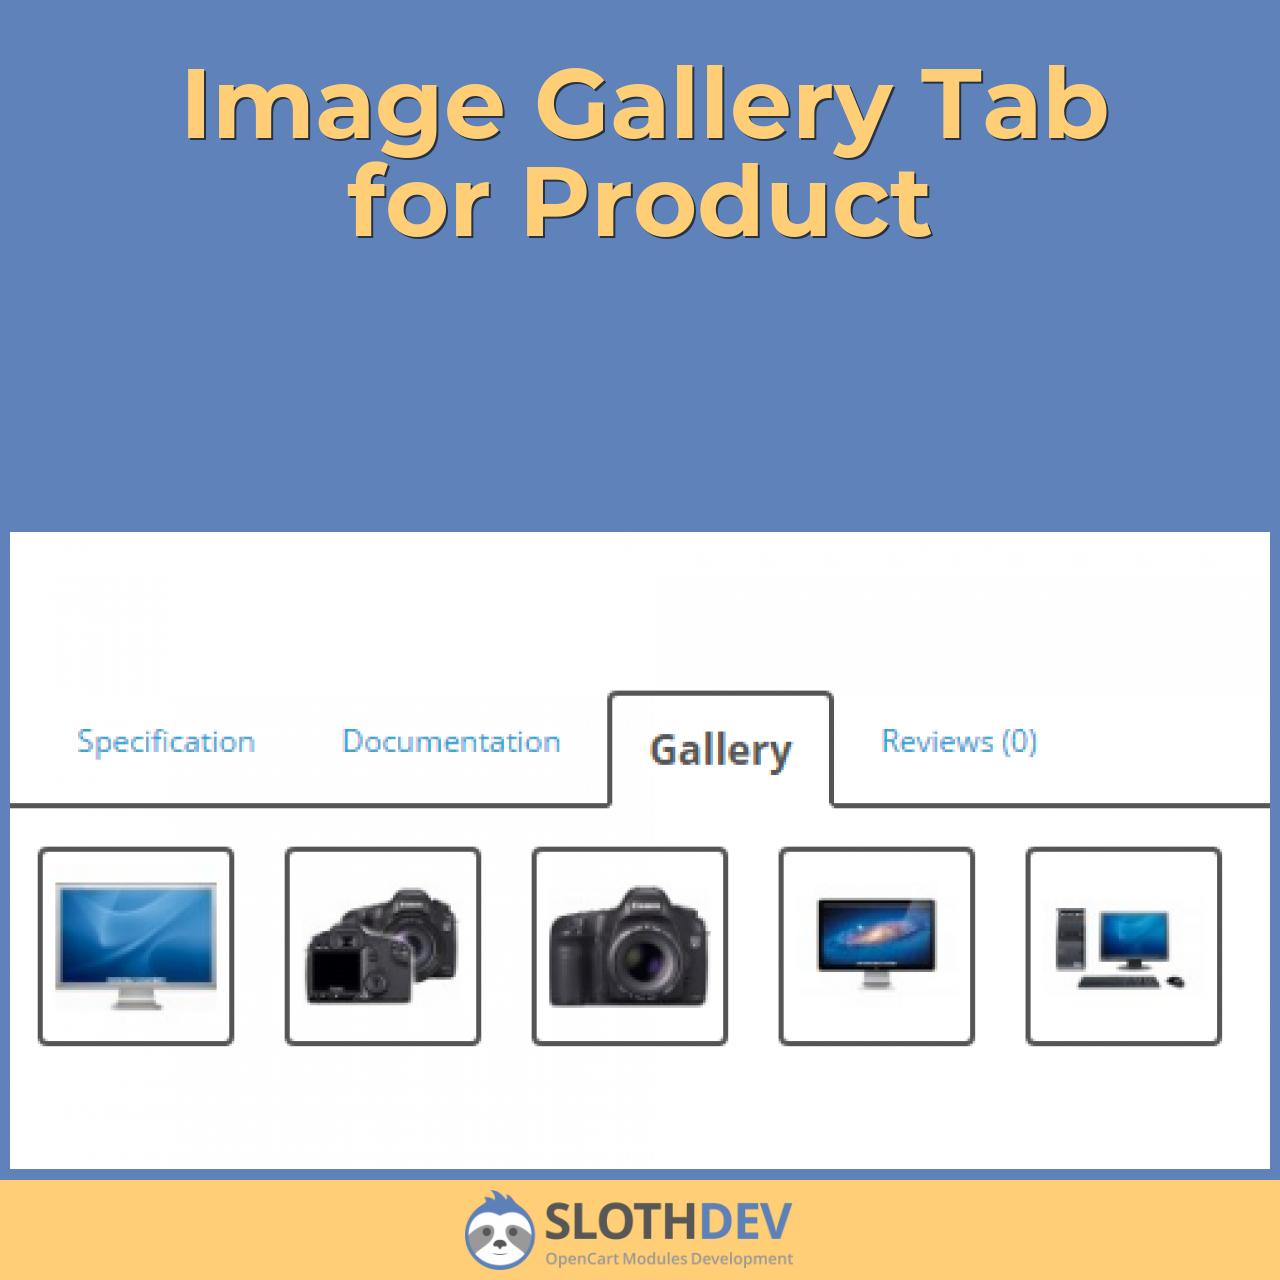 Image Gallery Tab for Product